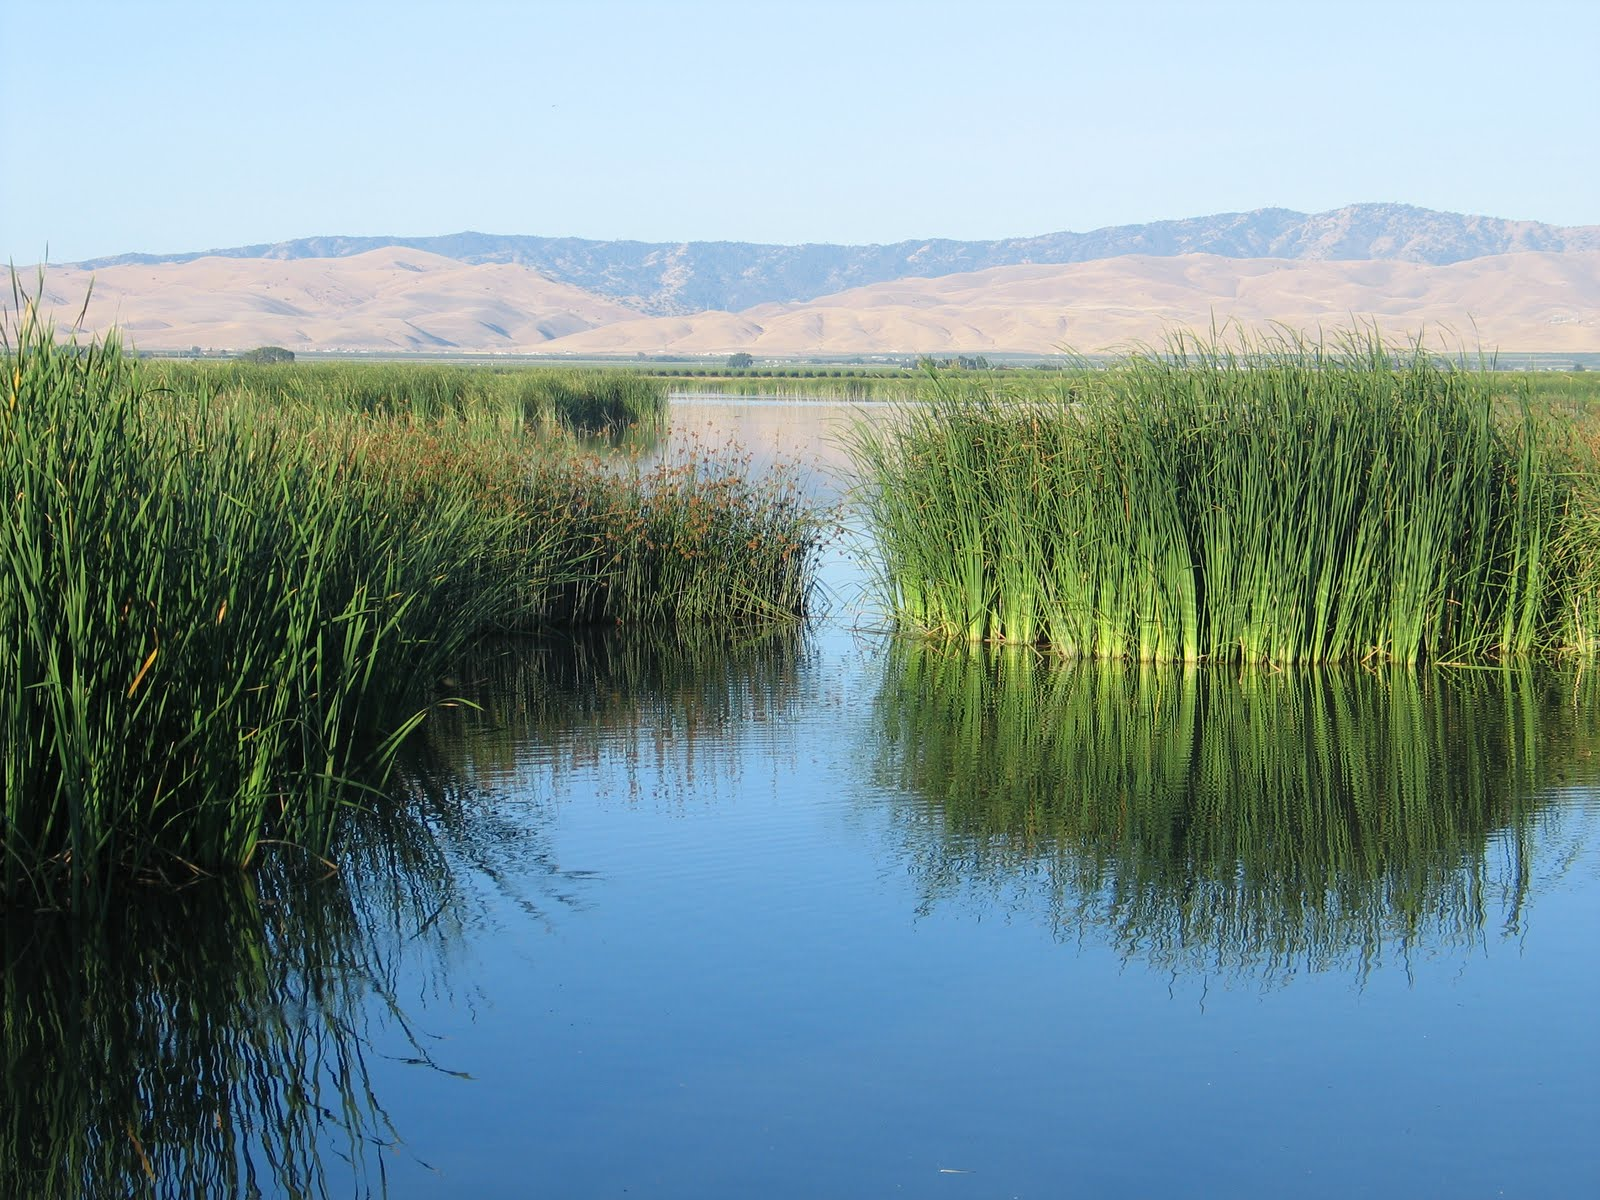 Wetlands in central California's otherwise dry environment.